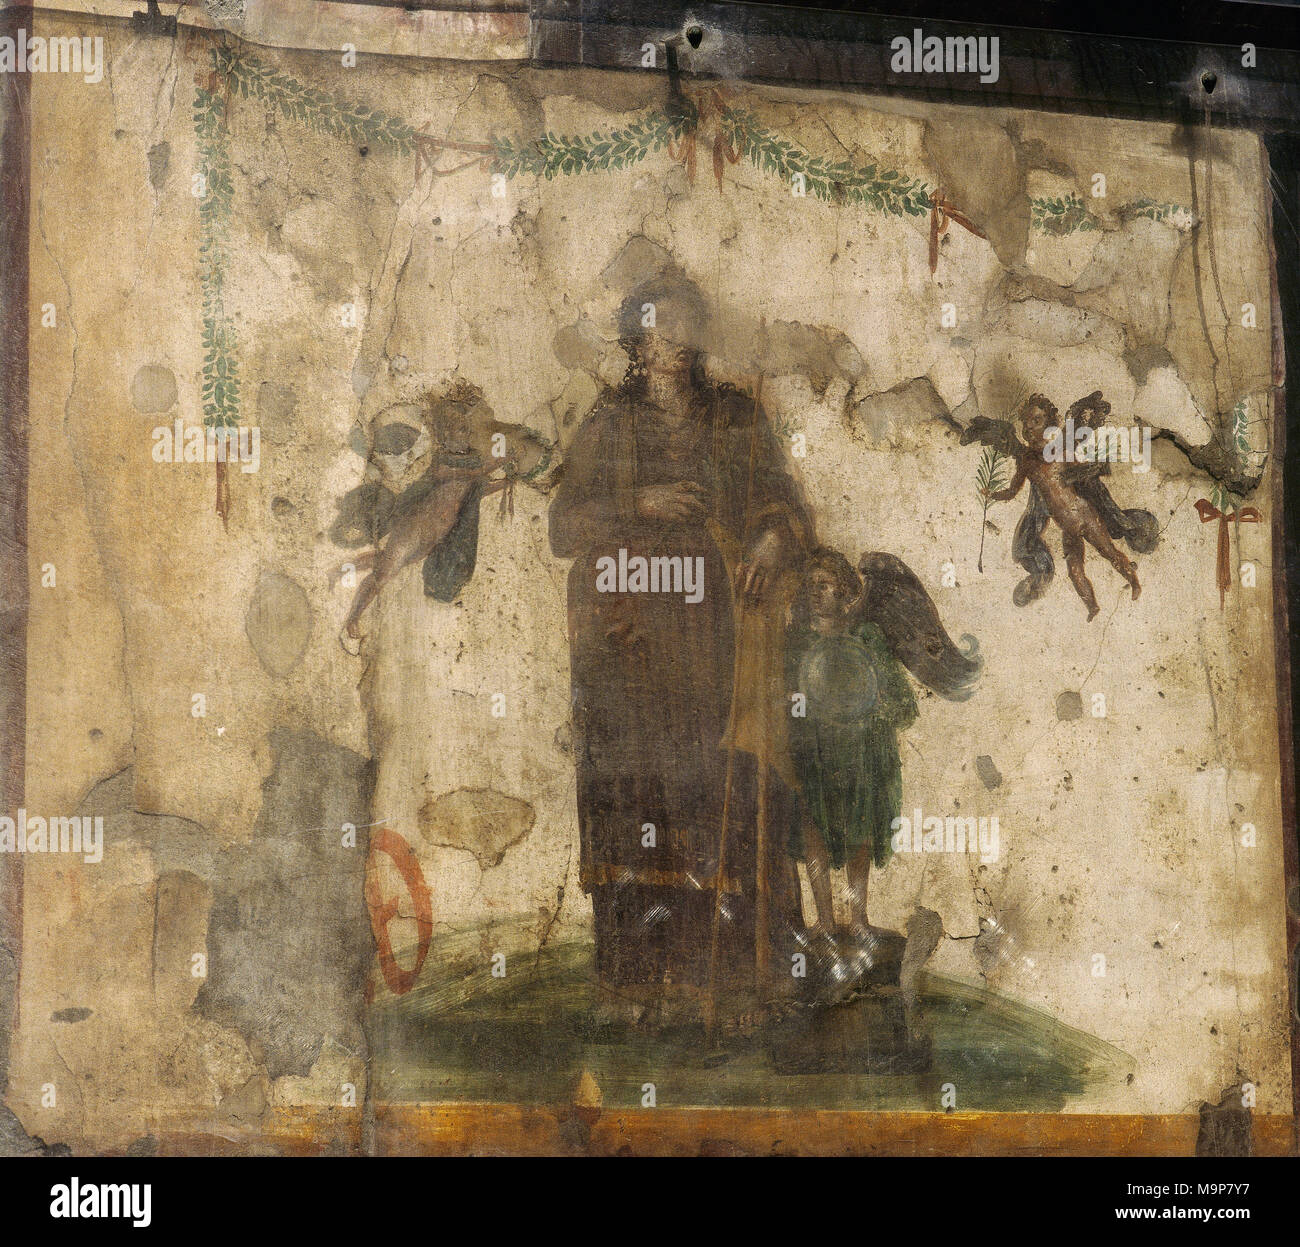 Pompeii. Wall painting depicting a woman accompanied by Cupids. In the upper zone, garlands. Decorative fresco of the interior of the roman house. Campania, Italy. - Stock Image